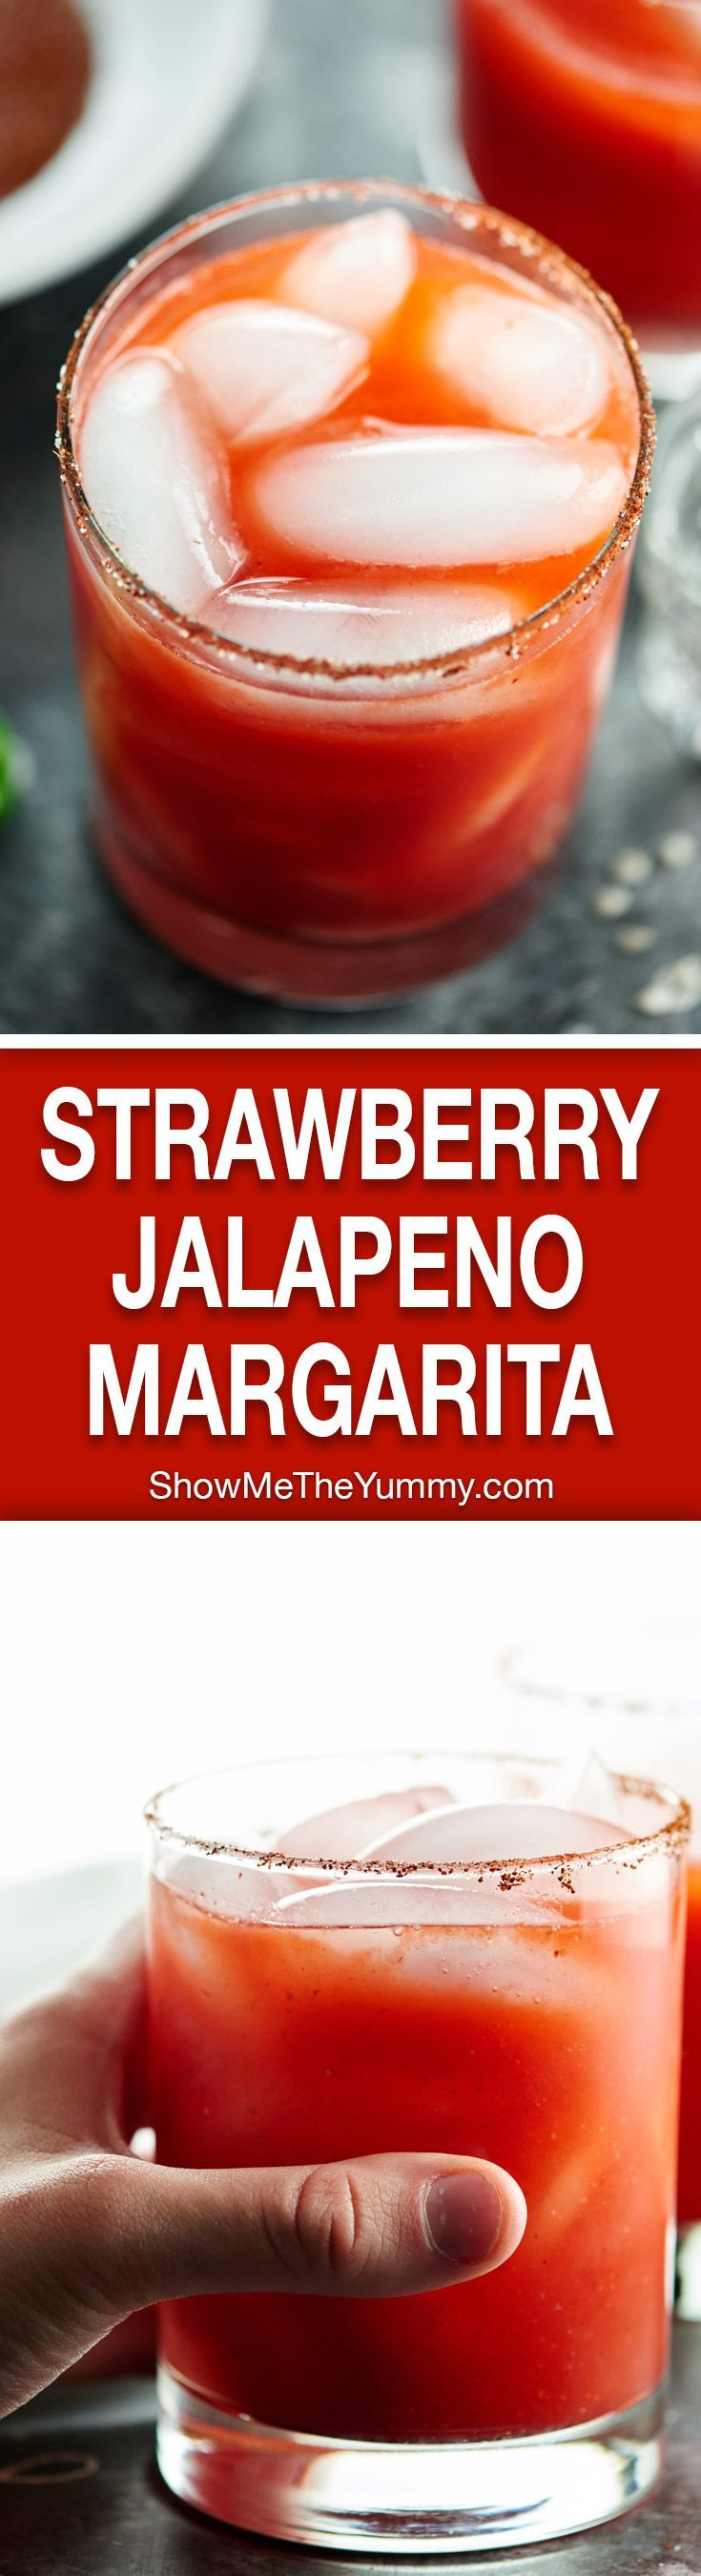 This Strawberry Jalapeno Margarita Recipe is sweet from strawberries, spicy from jalapeno, tart from lime juice, & a little smoky from the chili salt rim! http://showmetheyummy.com #strawberrymargarita #tequila